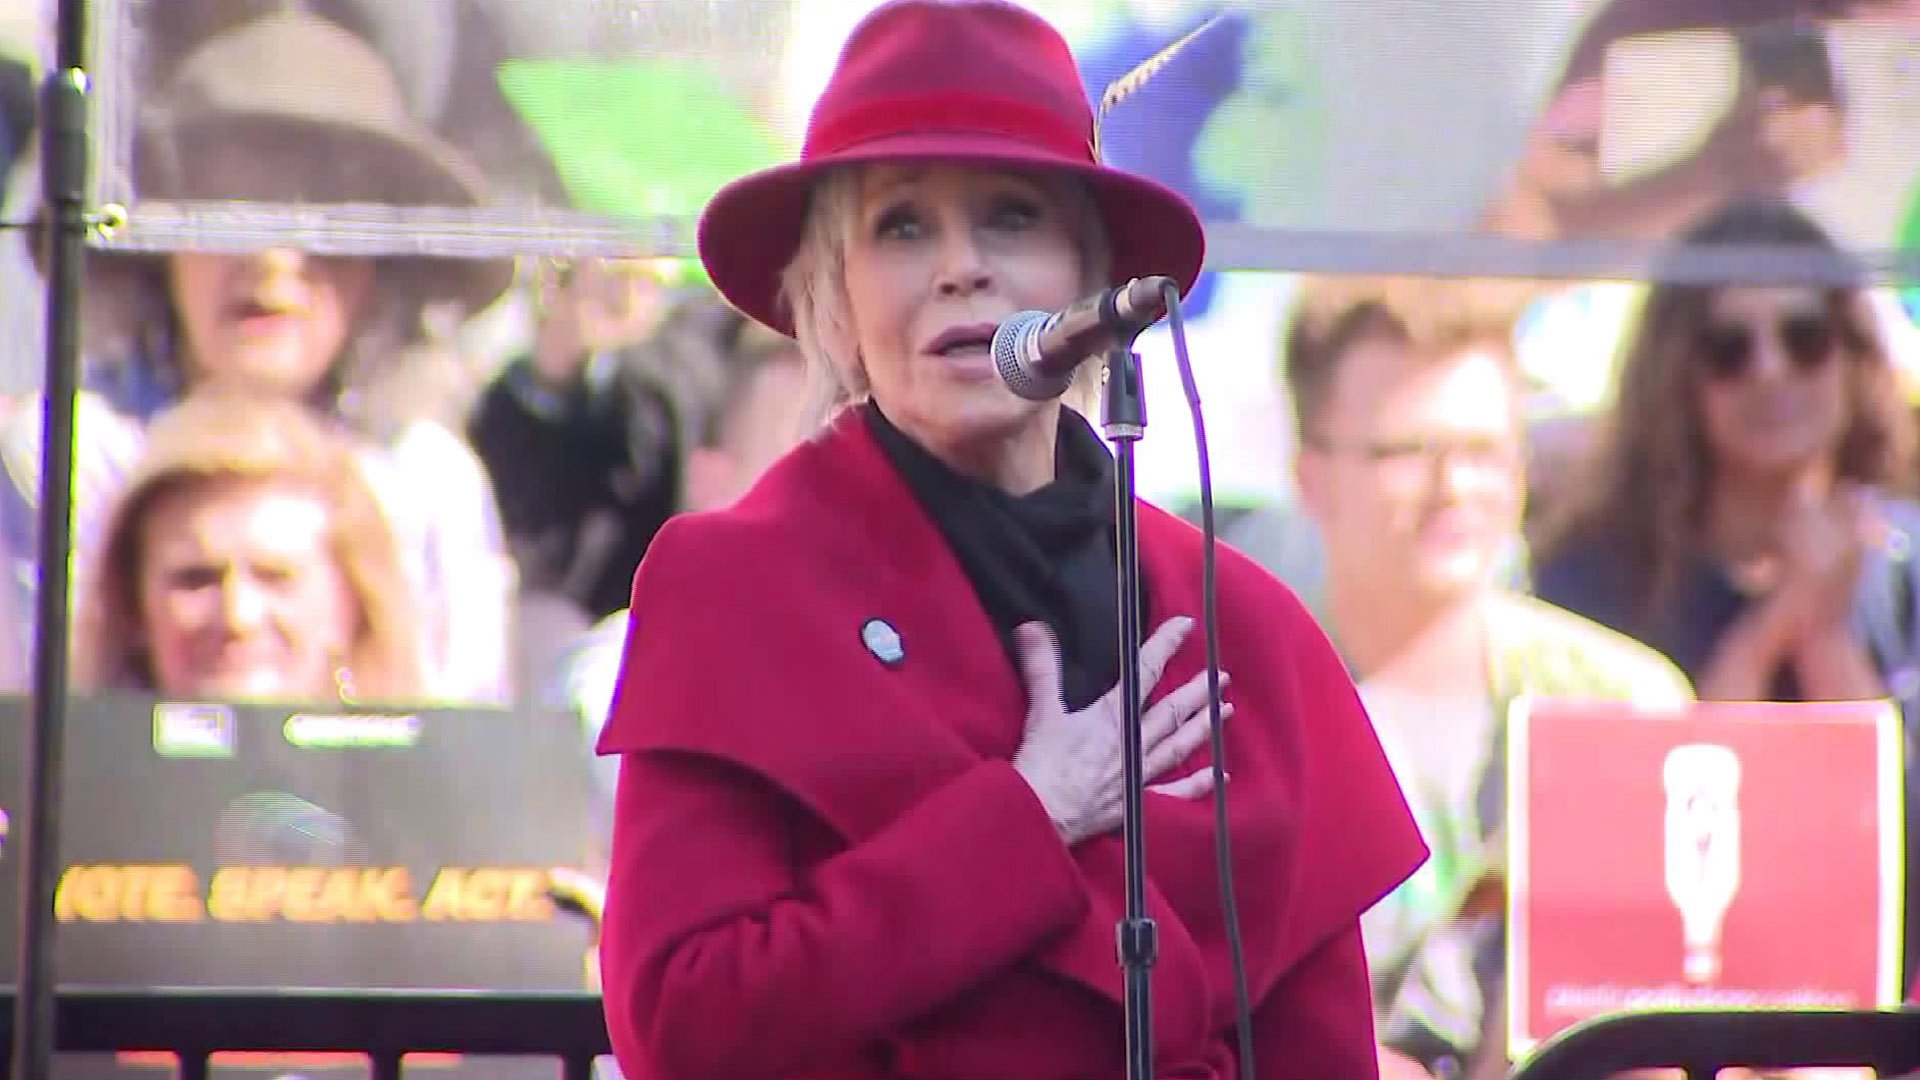 Jane Fonda speaks during a climate protest in Los Angeles on Feb. 7, 2020. (Credit: KTLA)